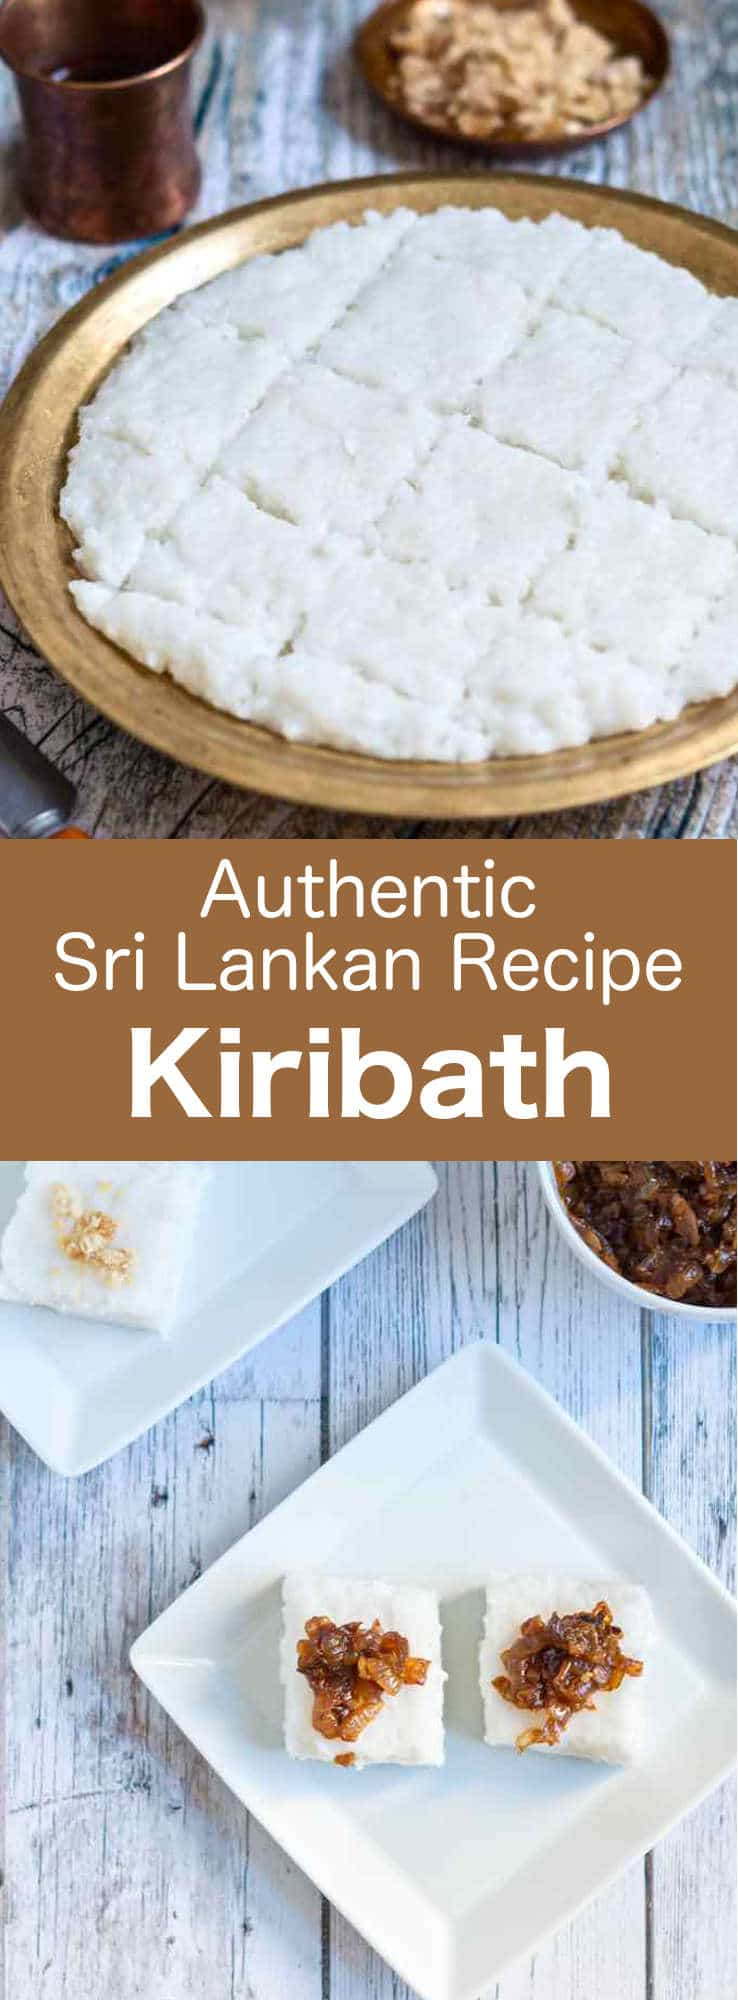 Kiribath is a classic Sri Lankan dish shaped as a cake, made of rice and coconut milk. It is a celebratory treat for all special occasions and is also a traditional Sri Lankan breakfast. #SriLanka #SriLankanCuisine #SriLankanDessert #SriLankanSnack #SriLankanRecipe #RiceMilk #MilkRice #WorldCuisine #196flavors